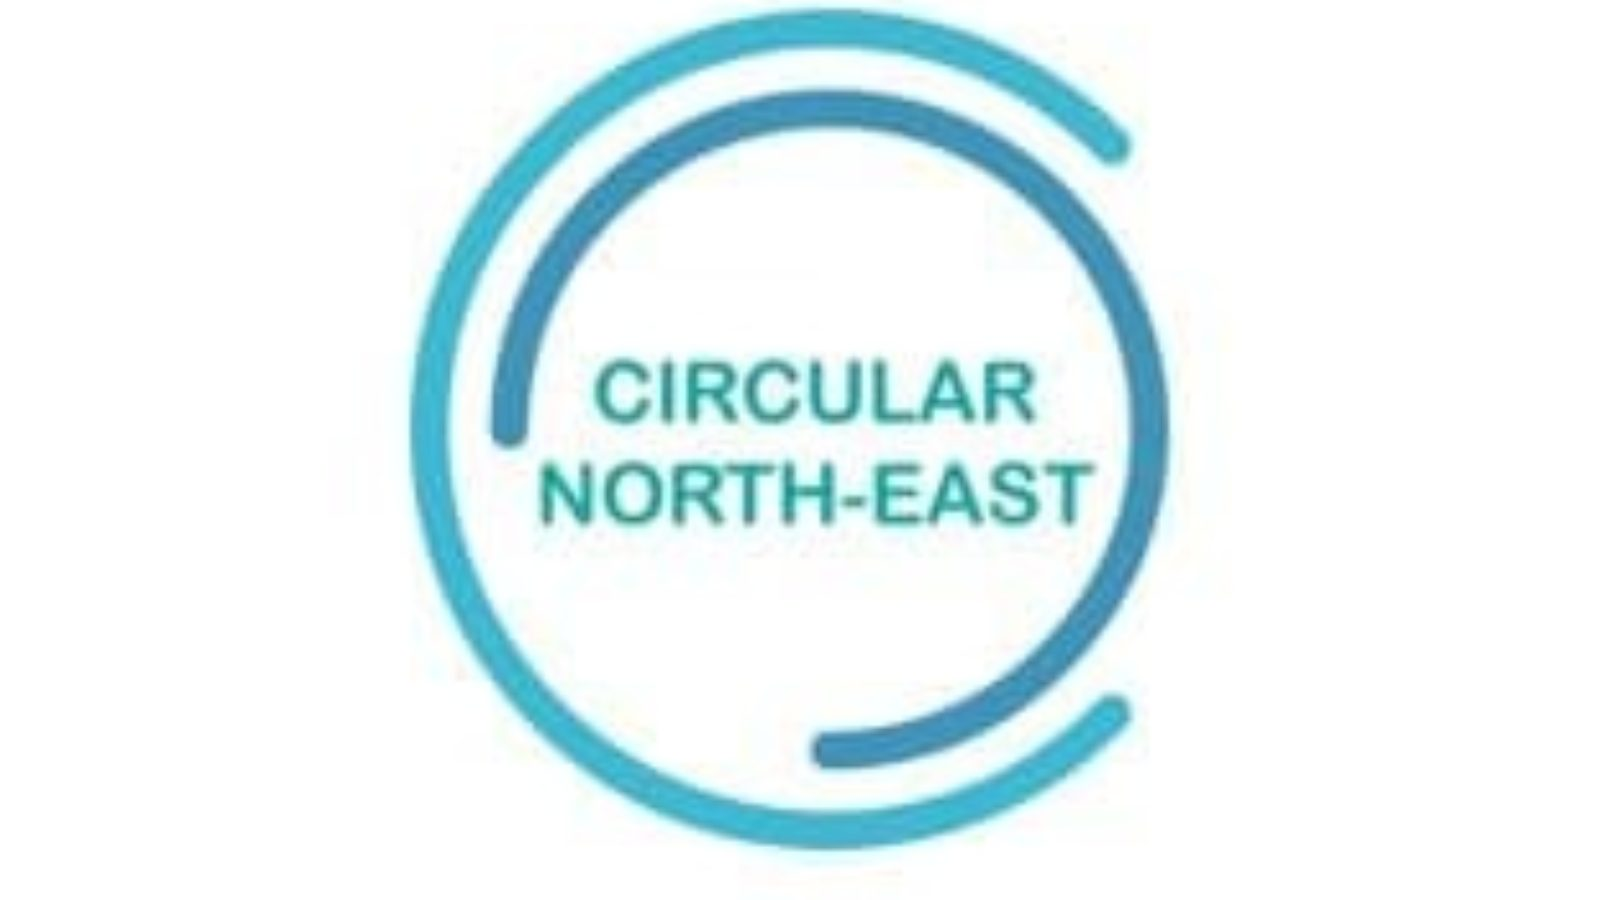 Circular North east